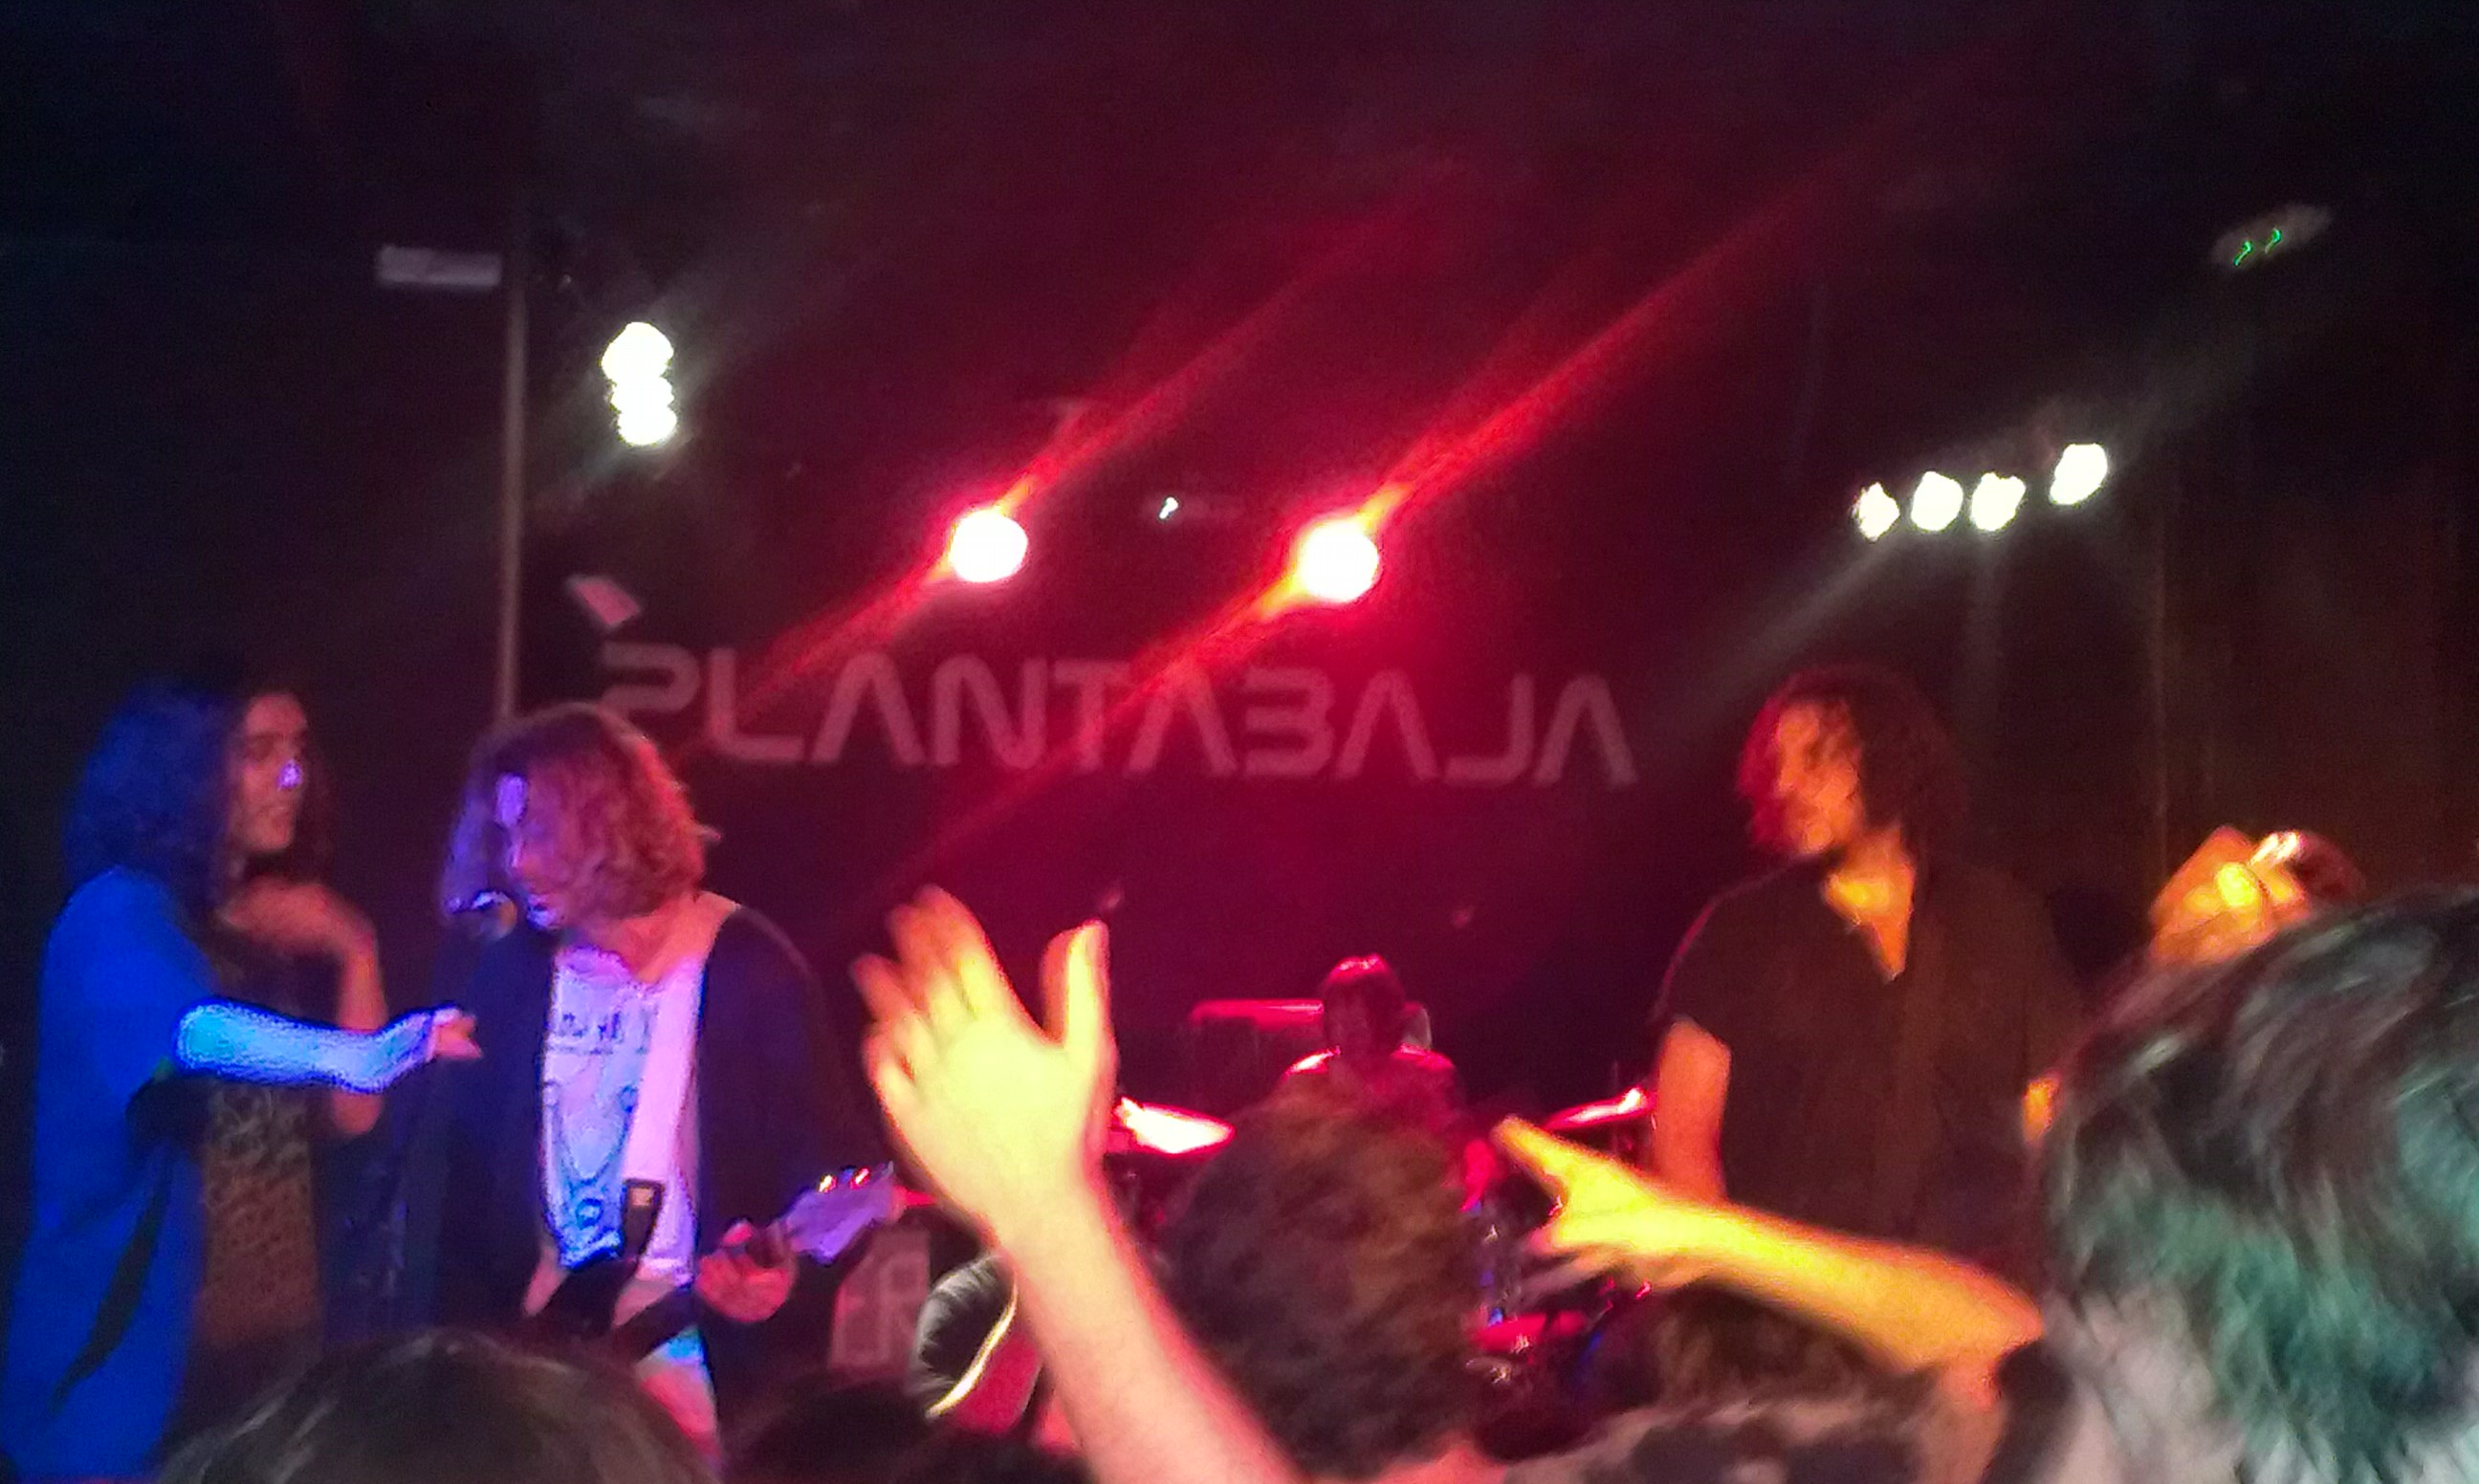 Nirvana cover band. It was a blurry night...